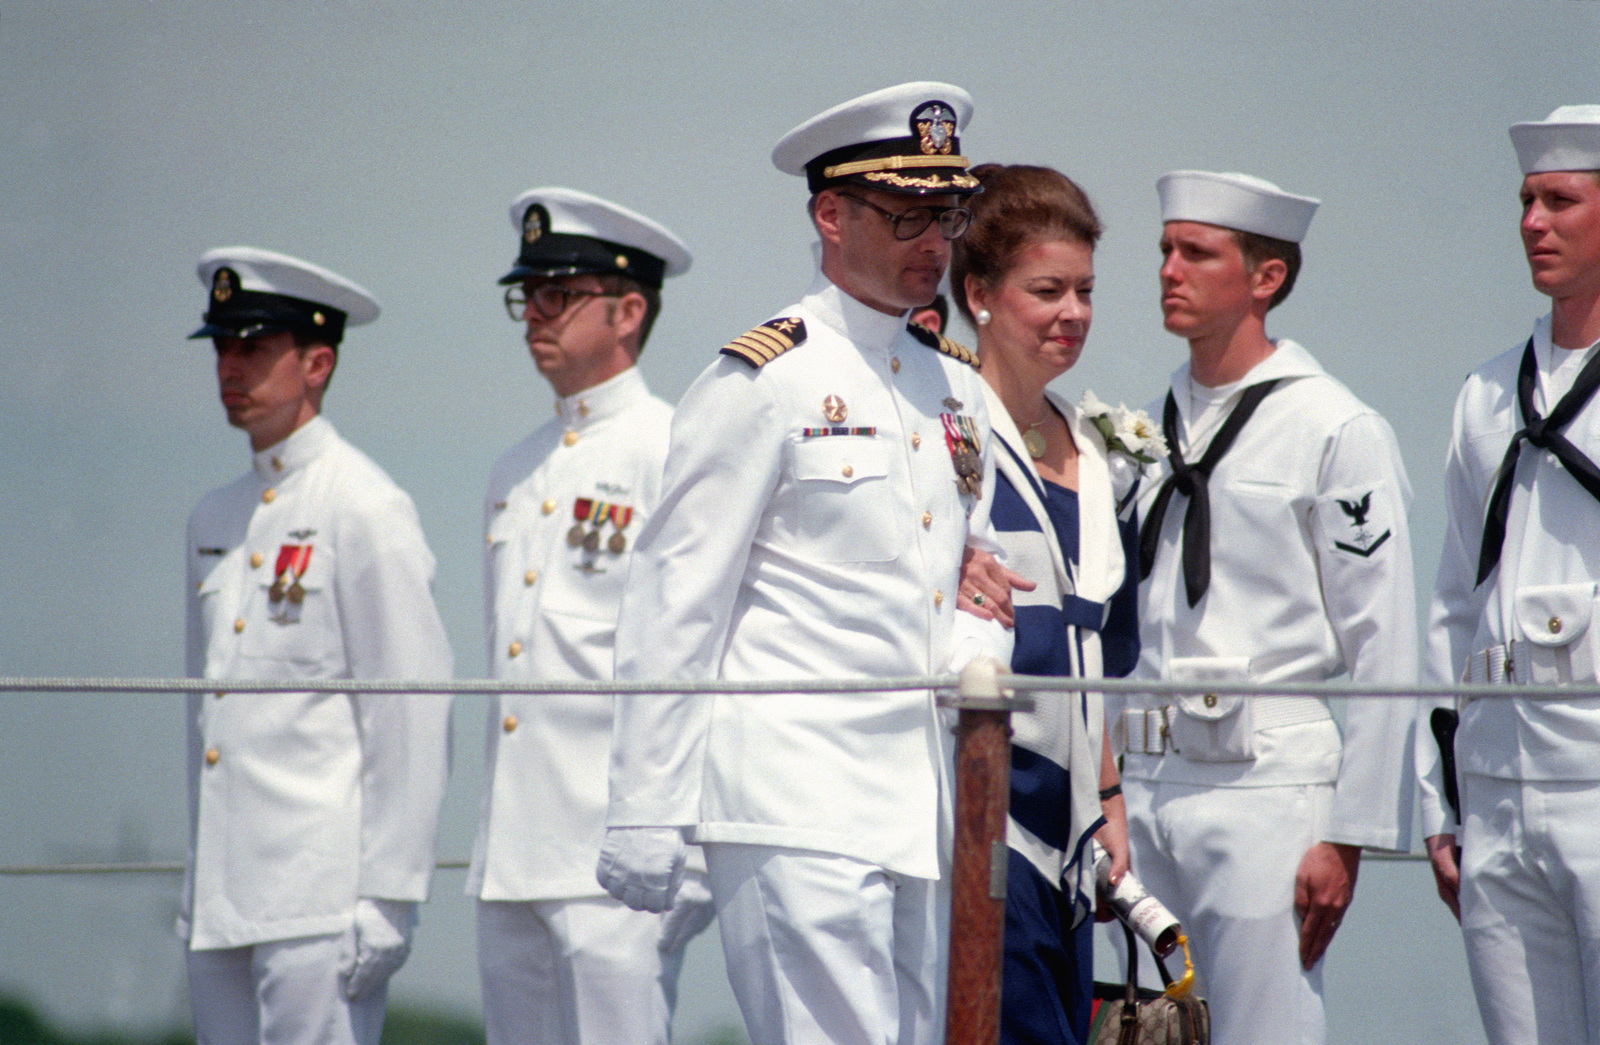 Captain Wade H. Taylor, commanding officer (Blue) of the nuclear-powered strategic missile submarine USS ALABAMA (SSBN 731), escorts Barbara Edwards Dickinson, sponsor, to her seat during the ship's commissioning ceremony. She is the wife of Republican William L. Dickinson, Republican-Alabama